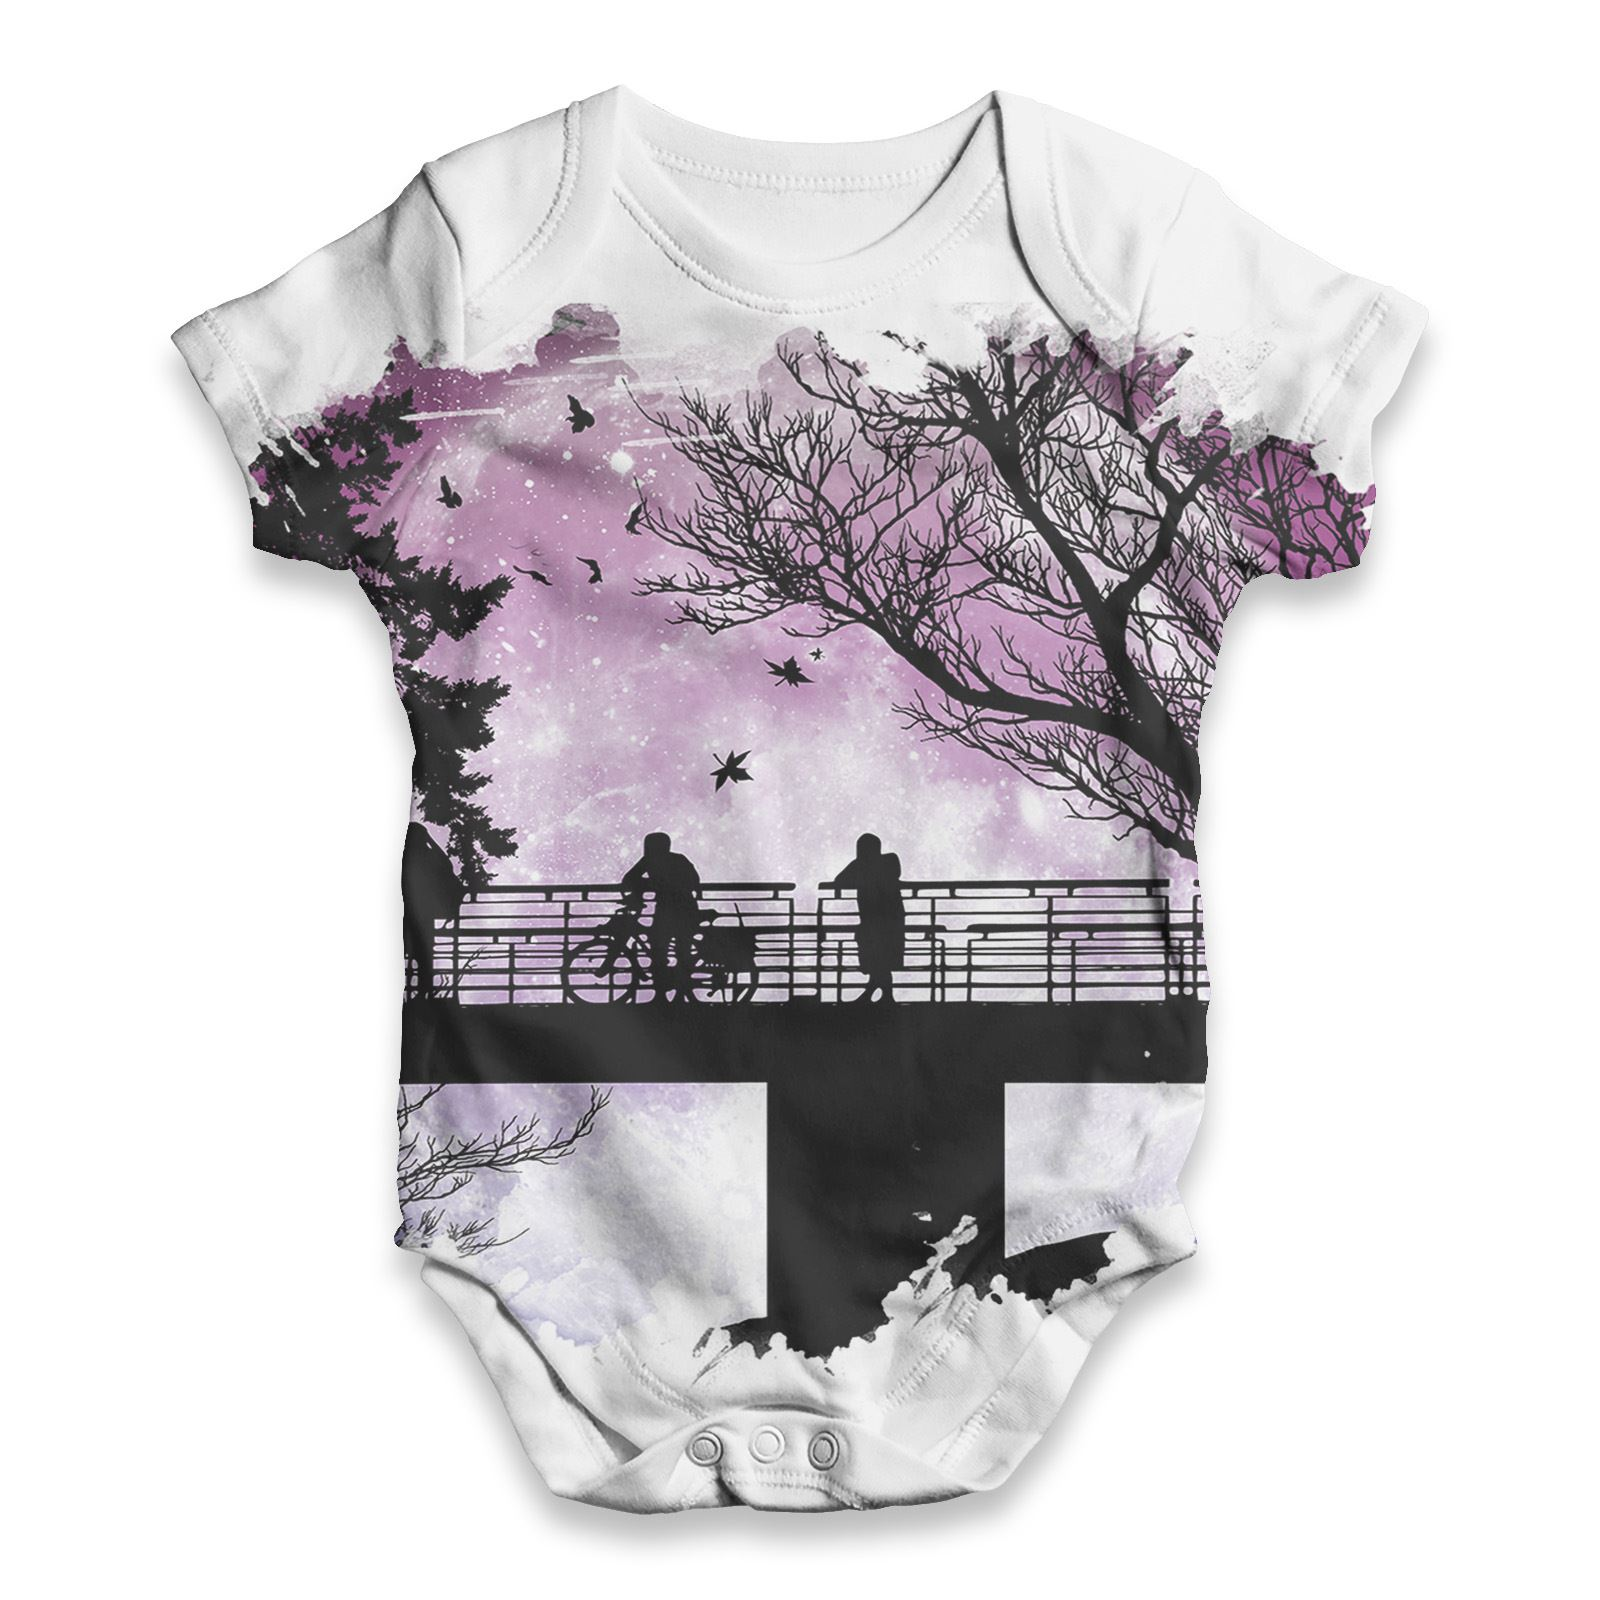 Twisted Envy Paint Drips Baby Unisex Funny ALL-OVER PRINT Baby Grow Bodysuit